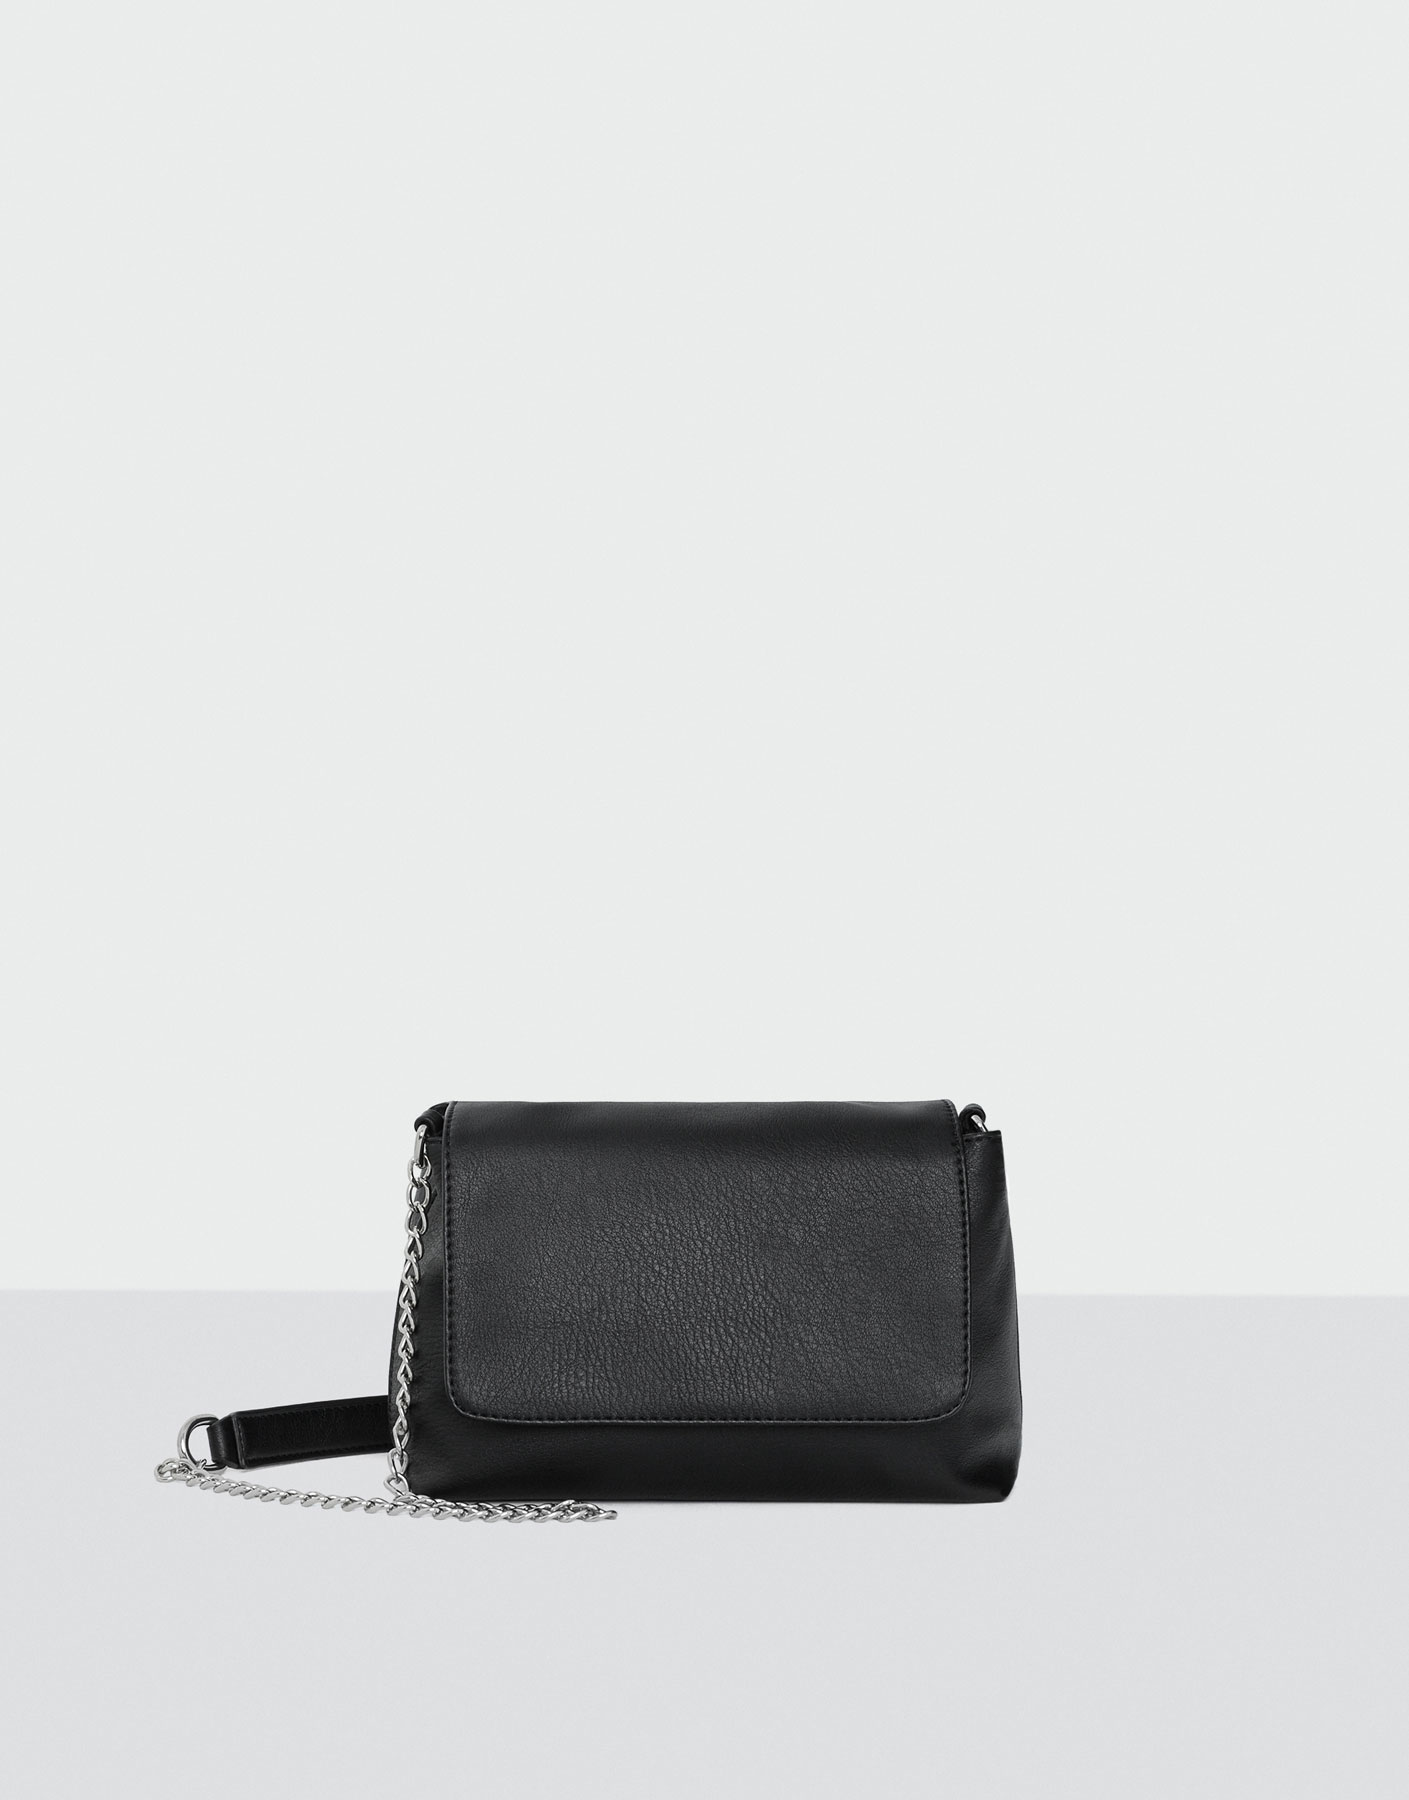 Basic black crossbody bag